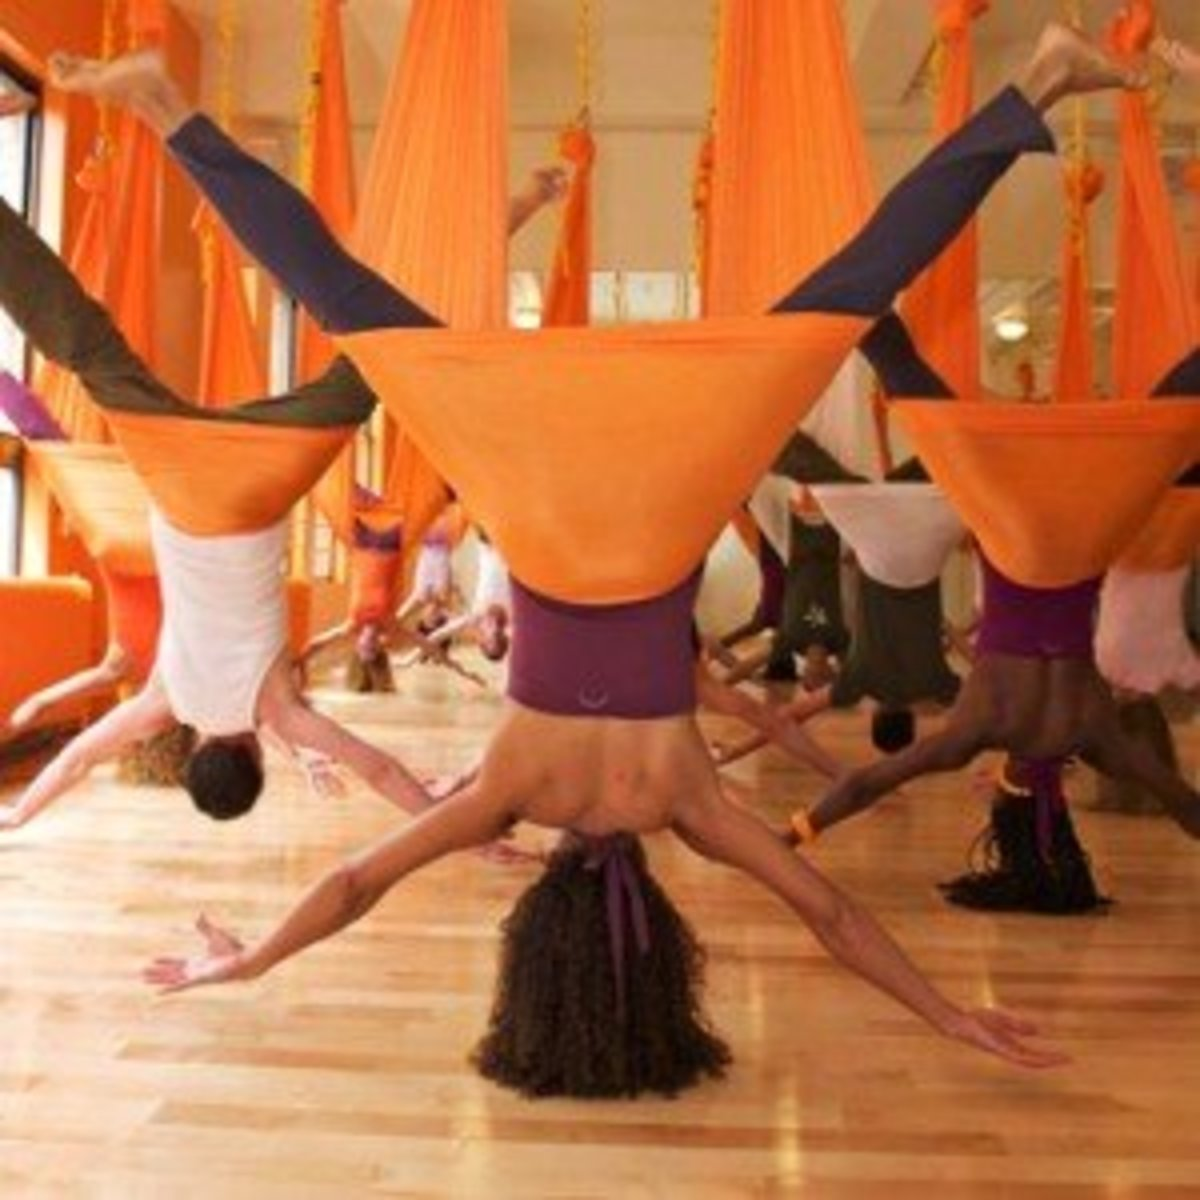 Anti Gravity Yoga, Aerial Yoga Fitness, Antigravity Yoga Swings / Hammock Frames For Home Use